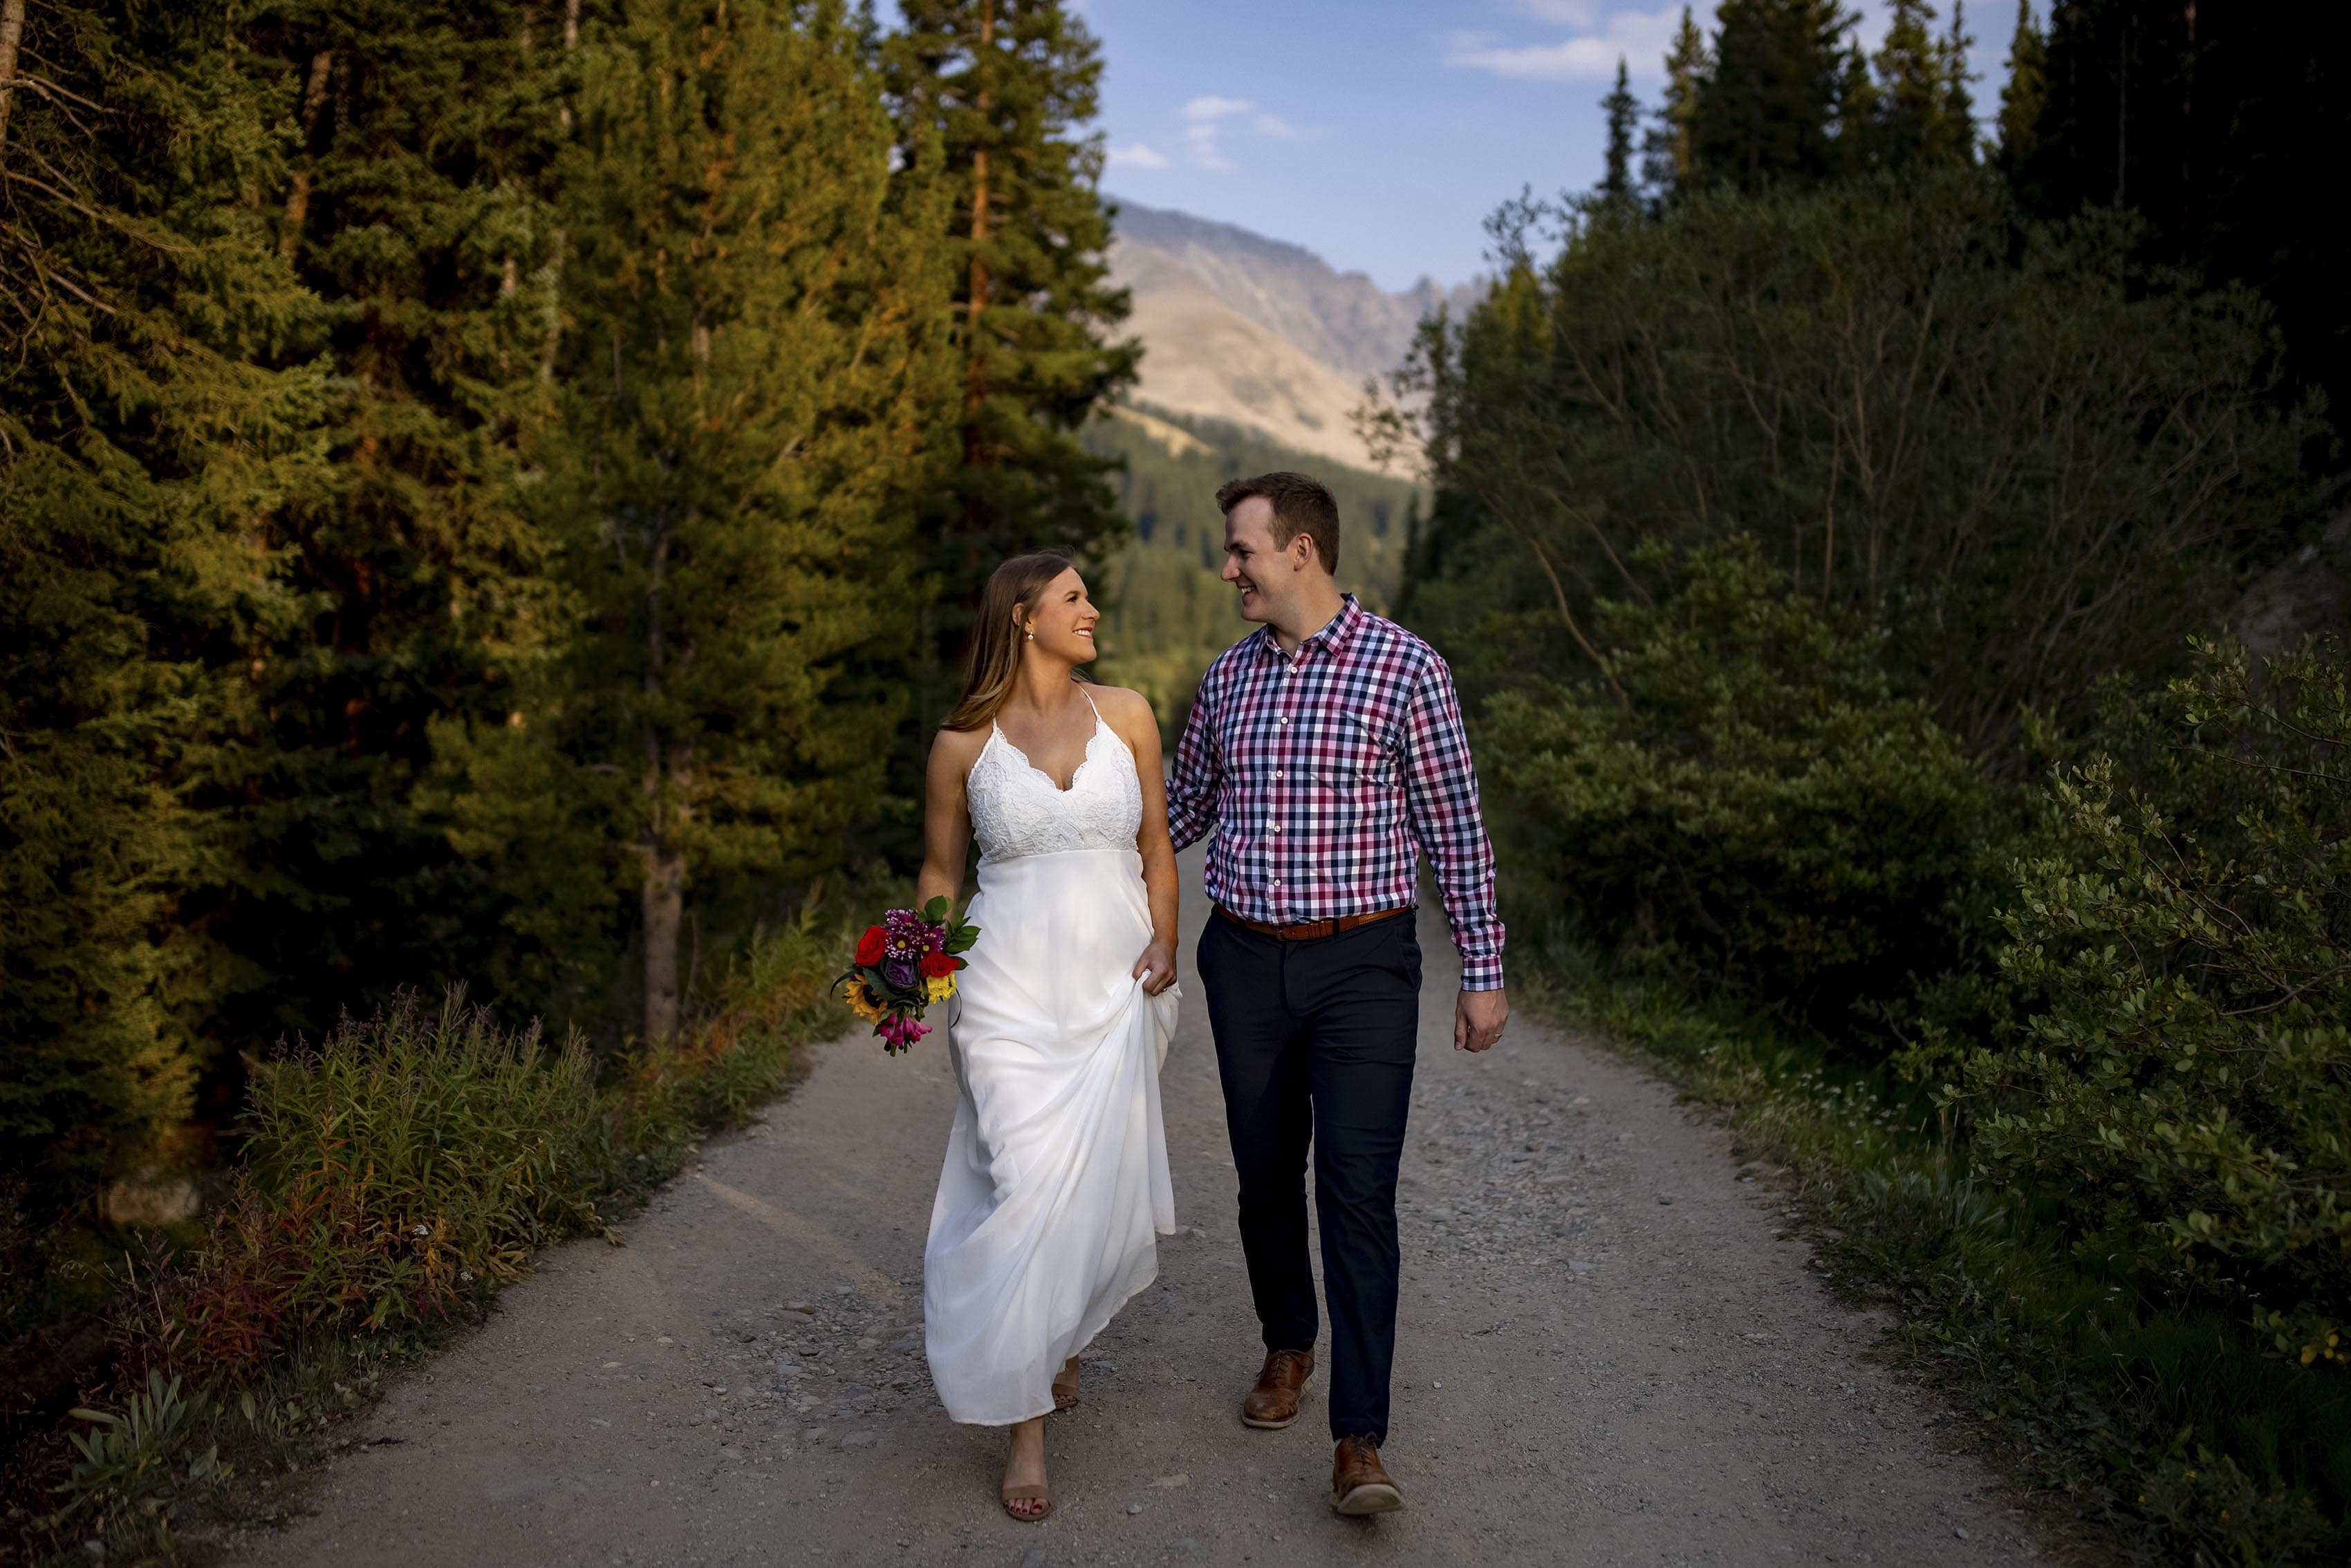 Mel and Drew walk together on the path at Mayflower Gulch in Colorado on their wedding day